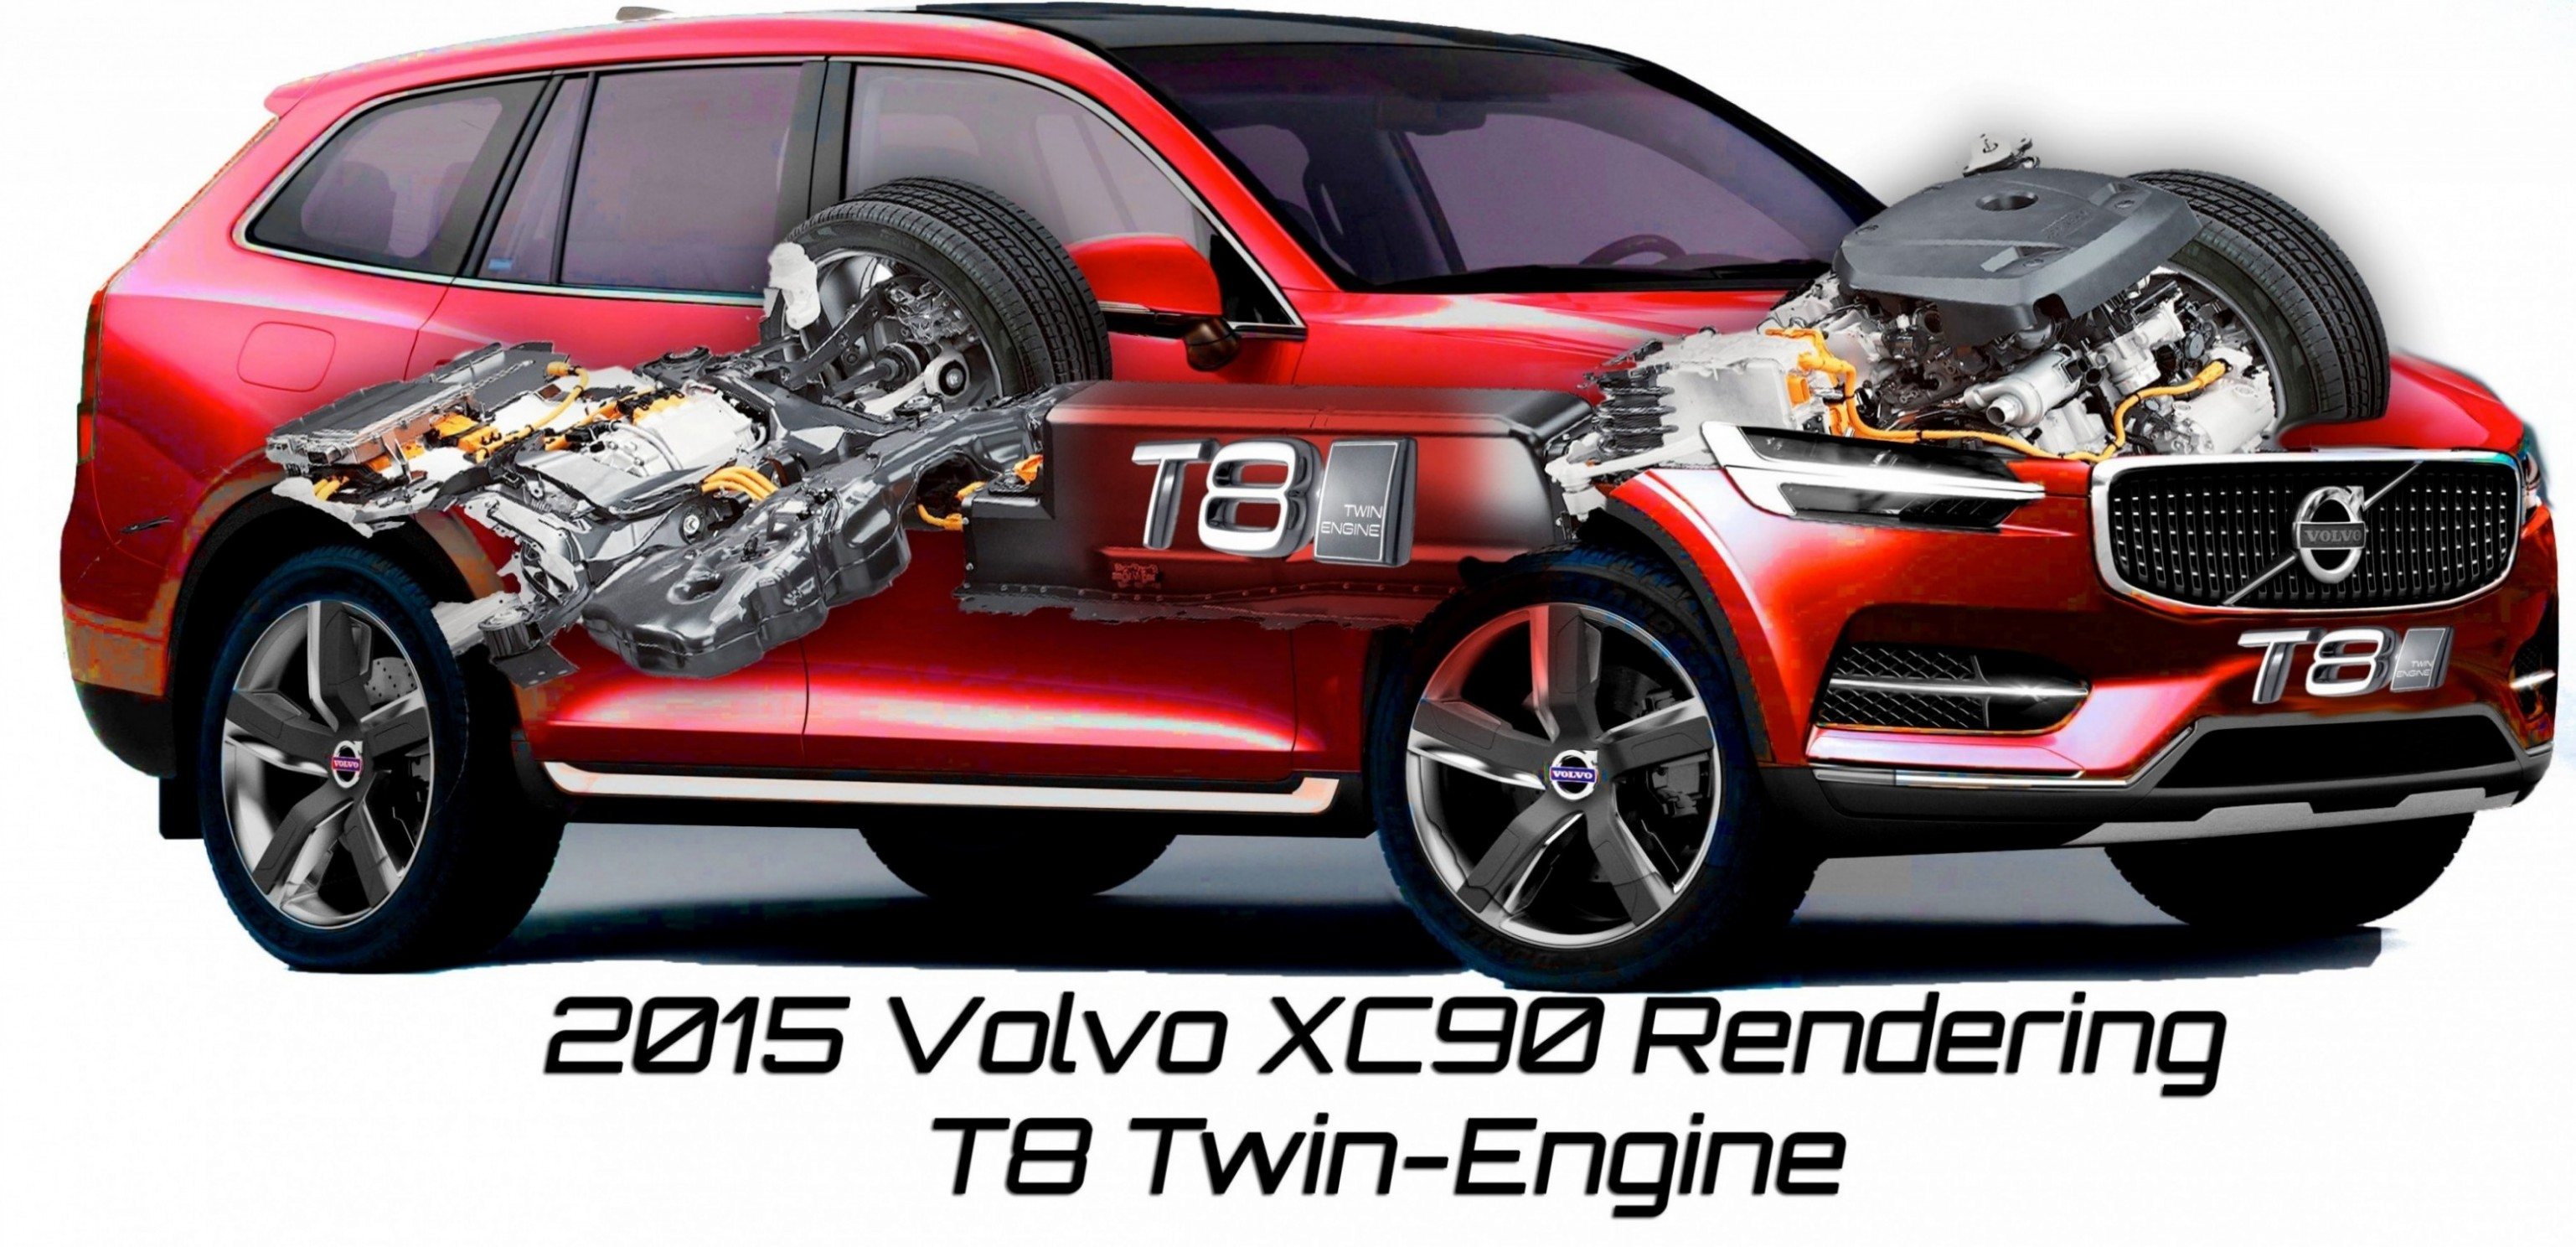 Engine Options The Volvo Xc90